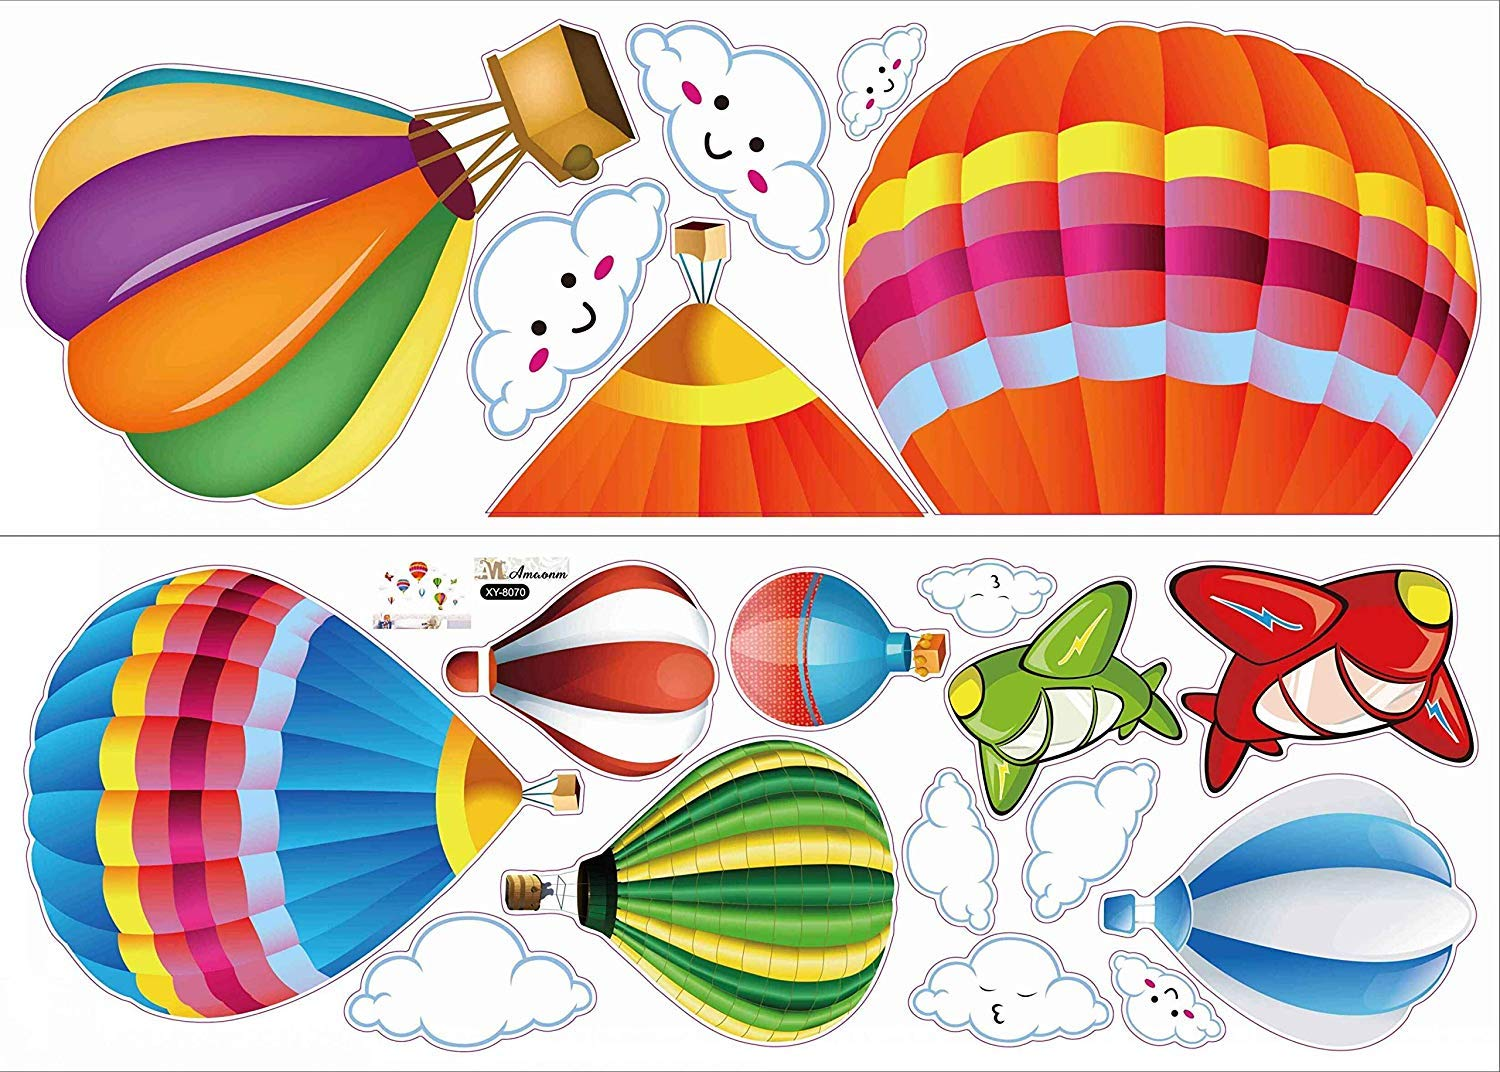 Amaonm Removable Creative 3D Hot air Balloon Aircraft and Smile Clouds Wall Decals Kids Room Wall Decorations Art Decor Stickers Nursery Decor 3D Art Decal Bedroom Bathroom Sticker by Amaonm